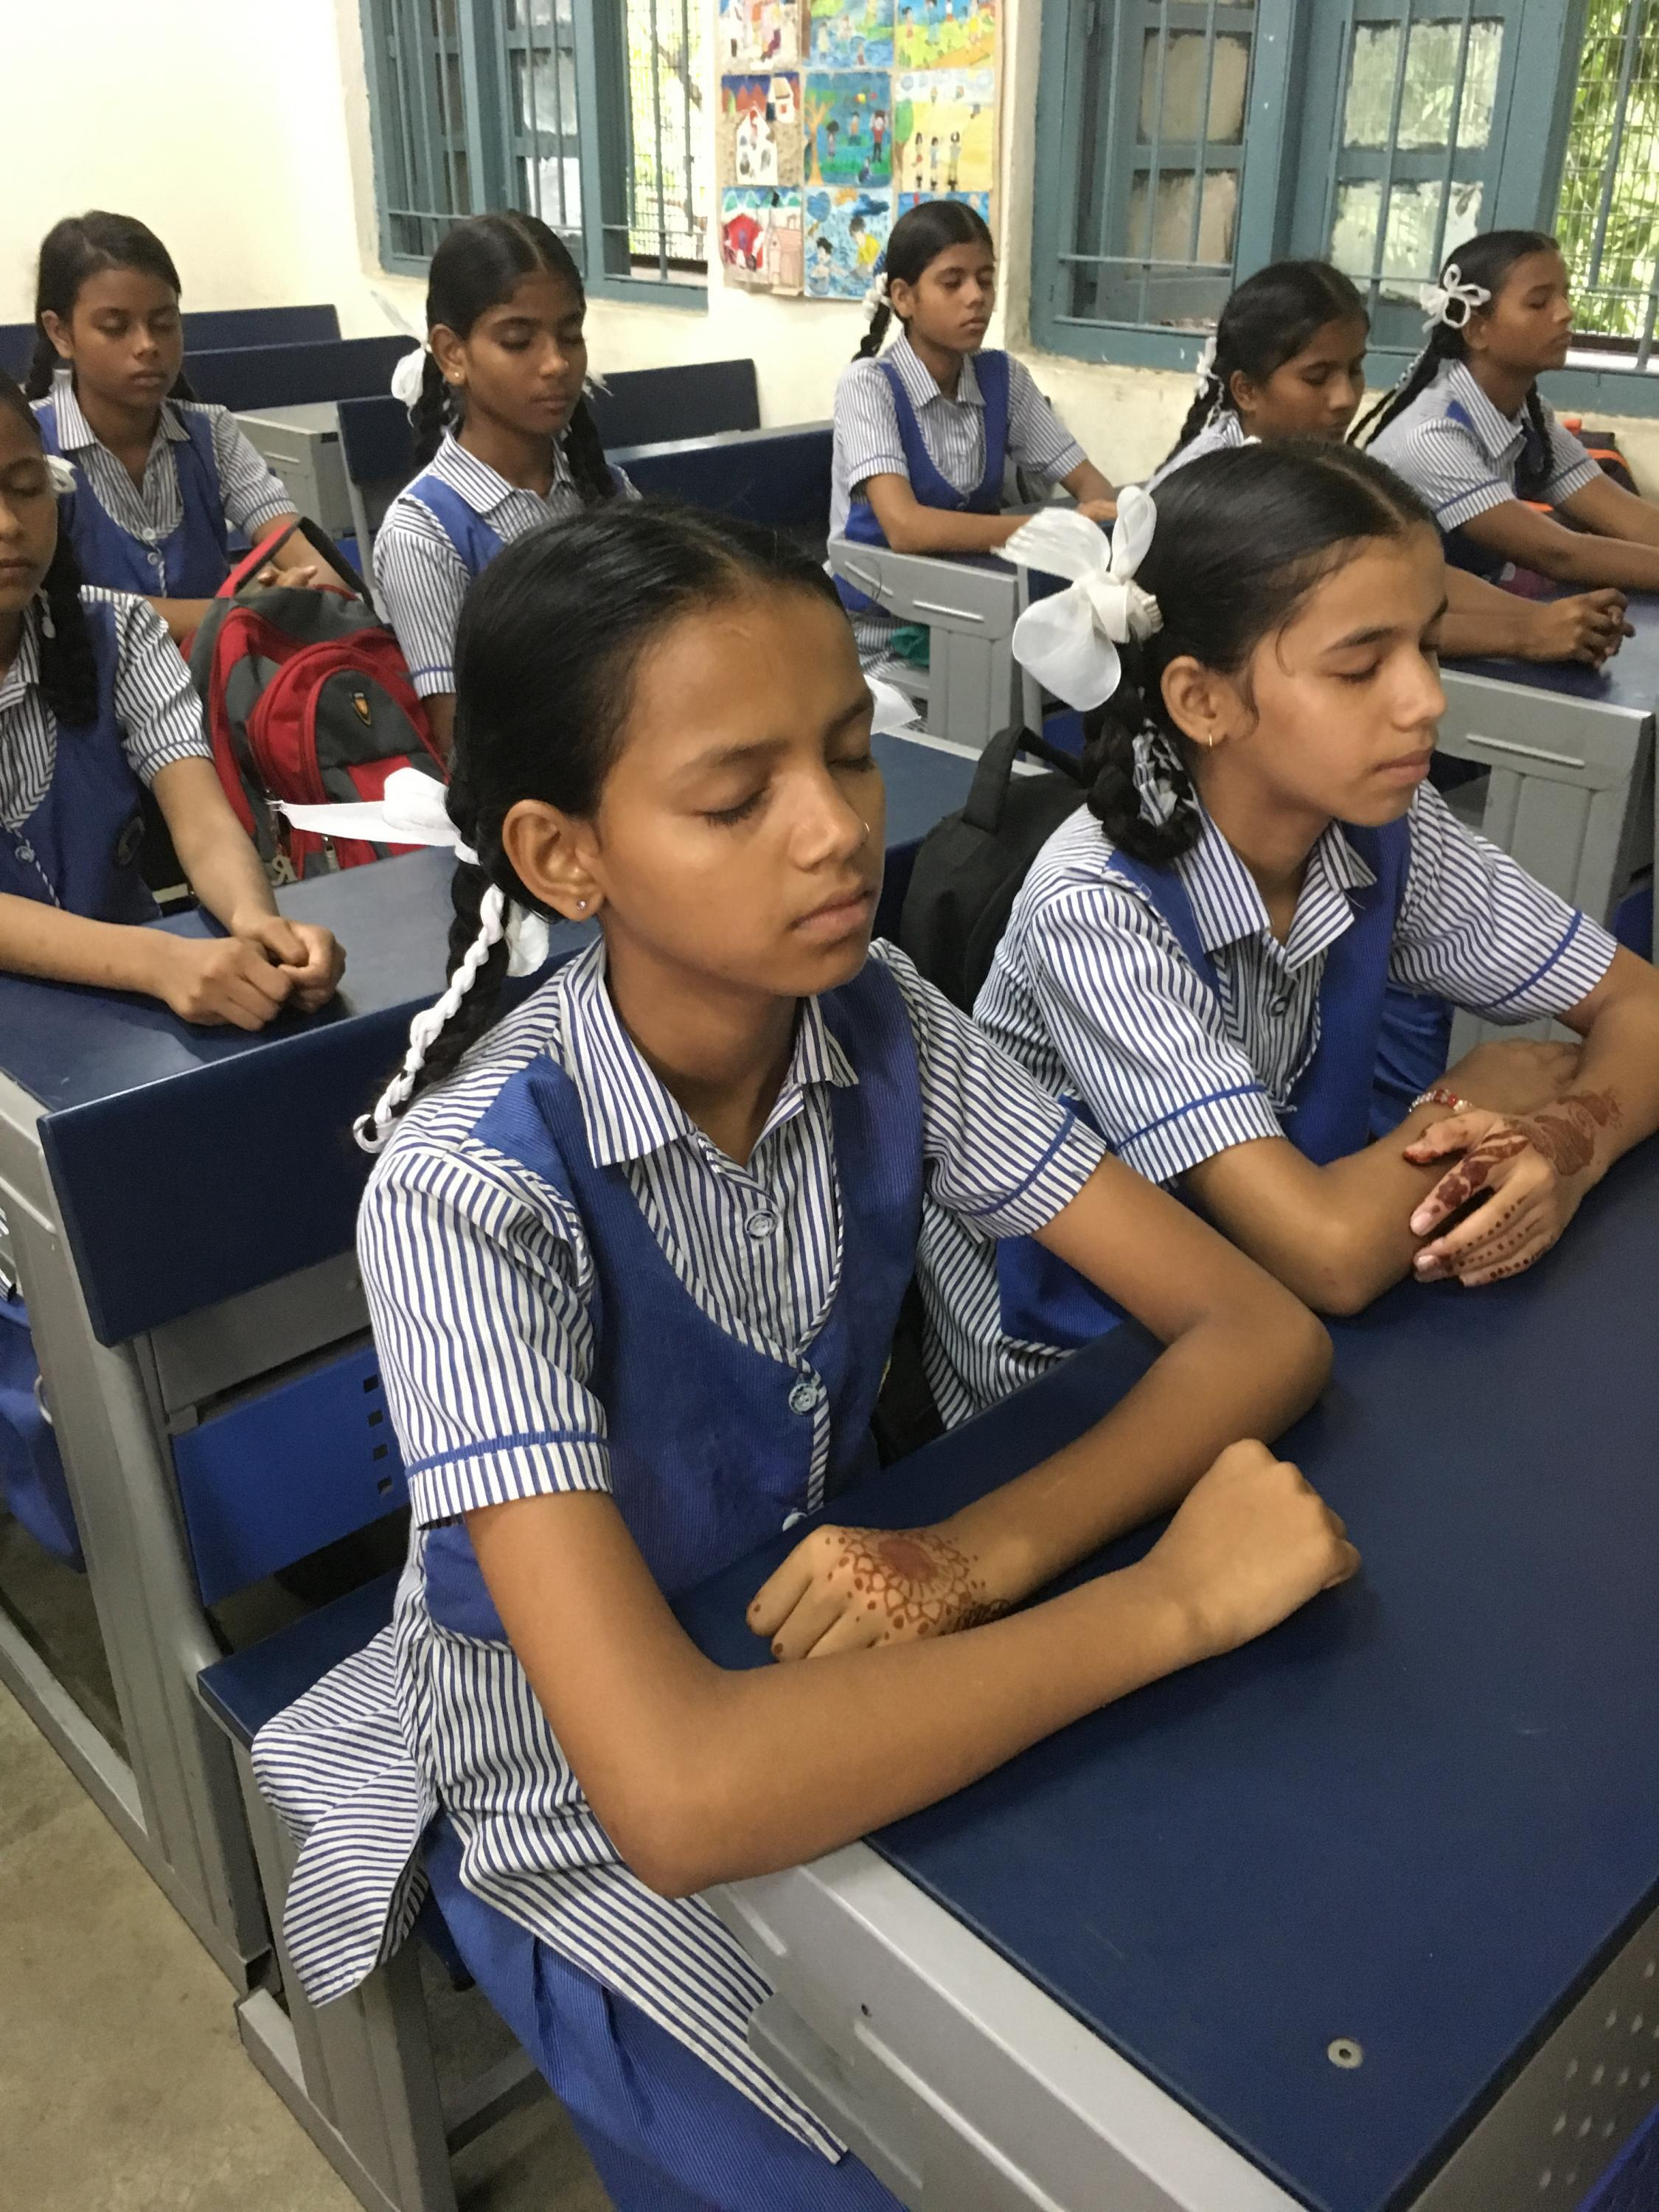 Students practice meditation as part of their happiness curriculum, Delhi, India